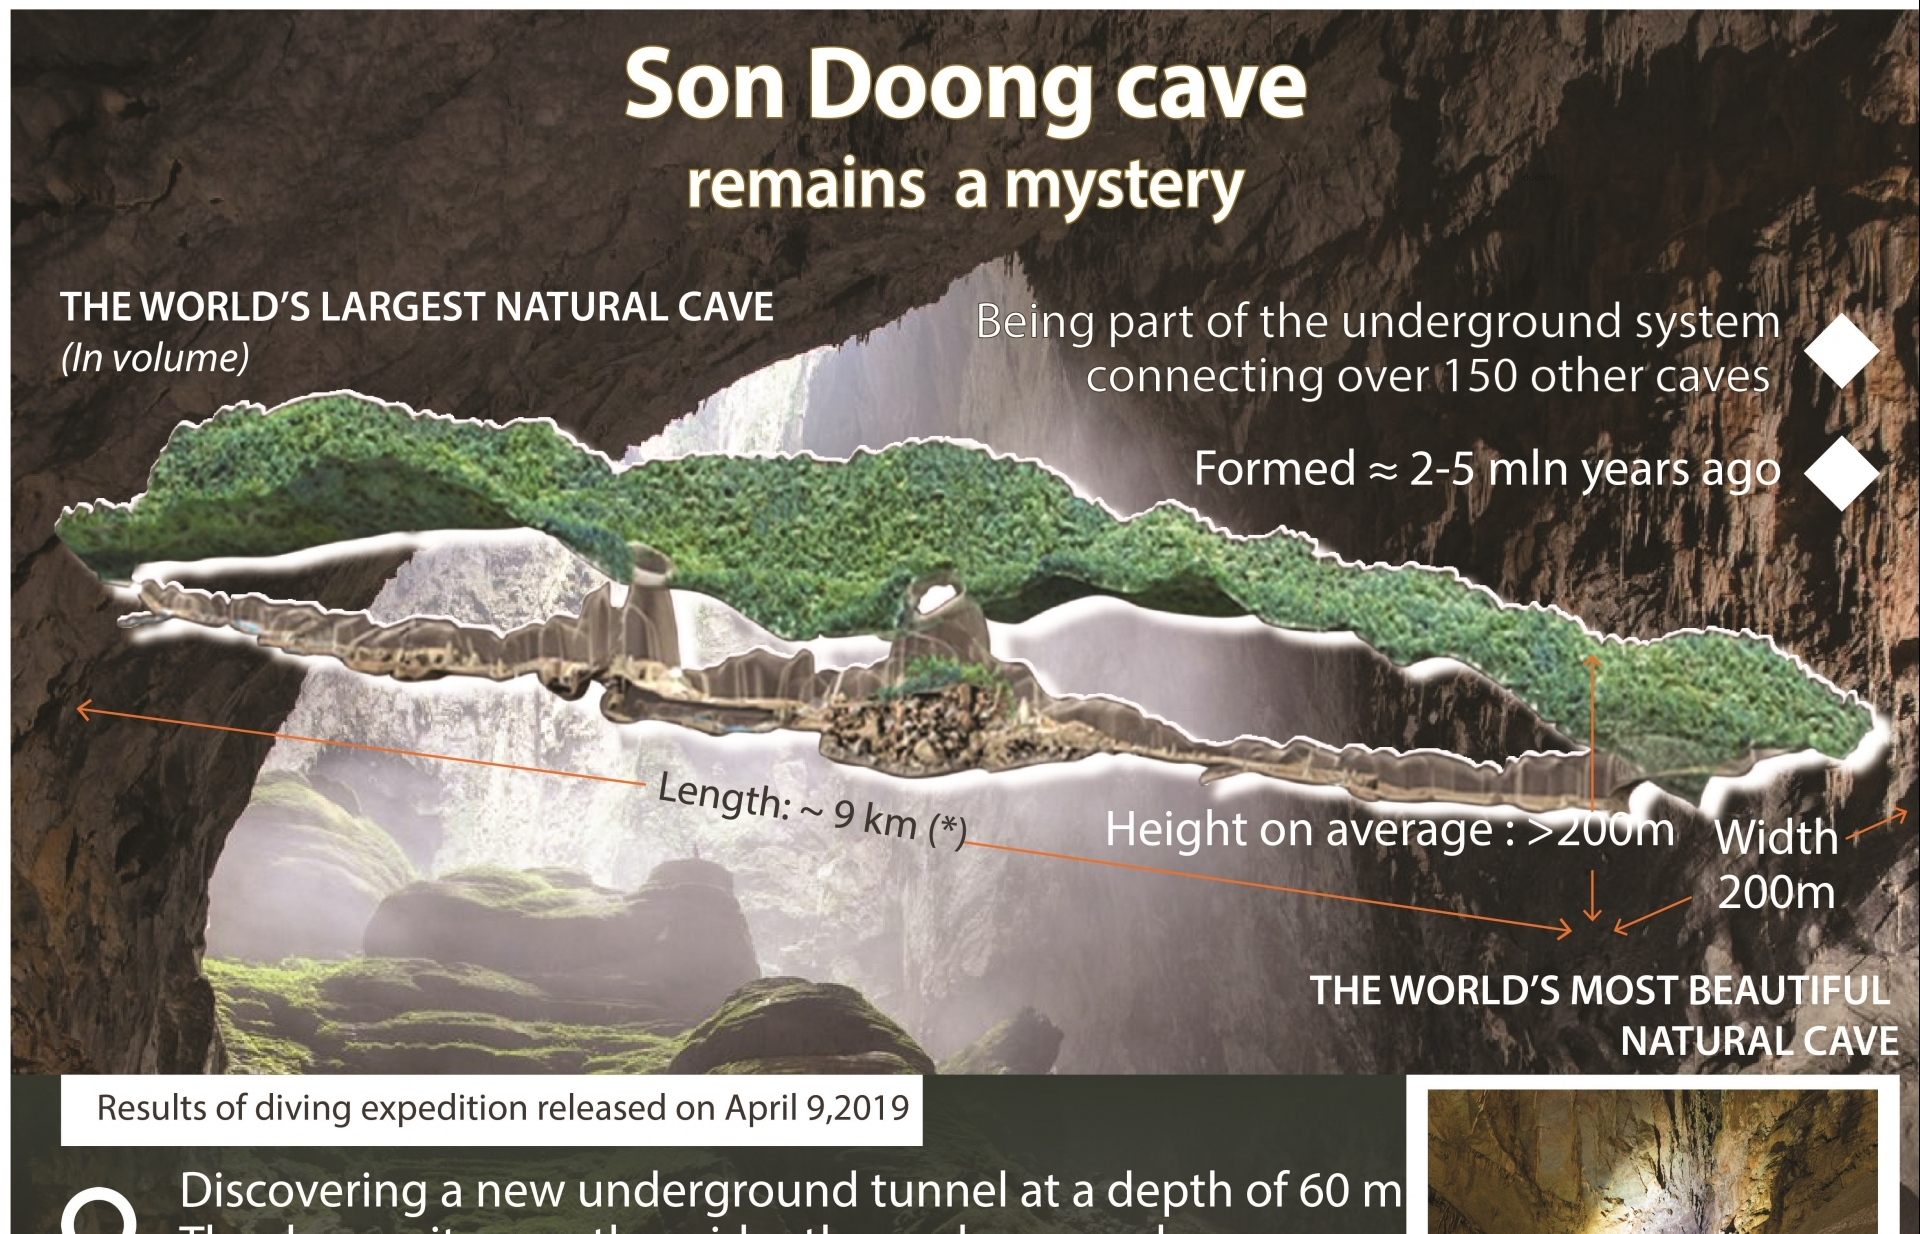 son doong cave remains a mystery infographics